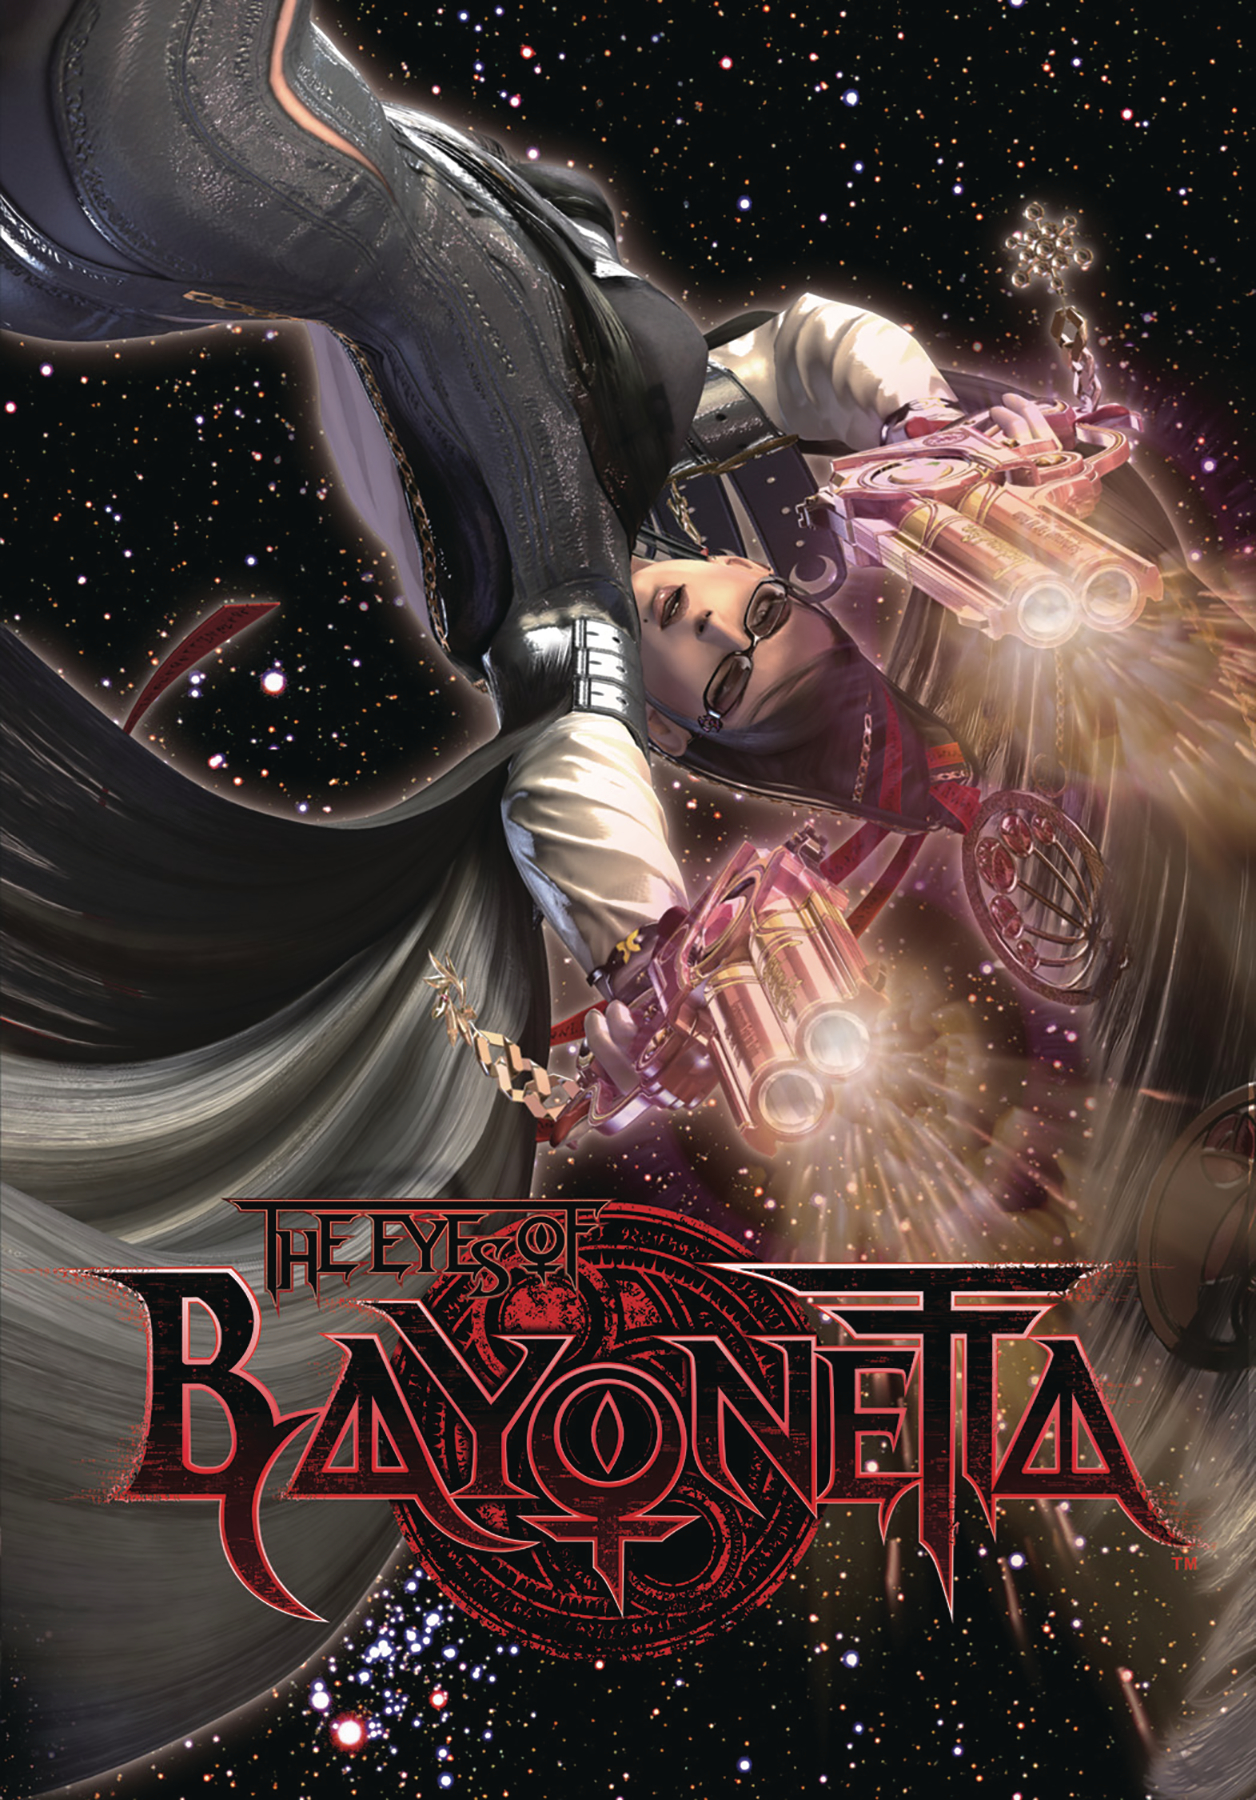 EYES OF BAYONETTA ART BOOK HC WITH DVD